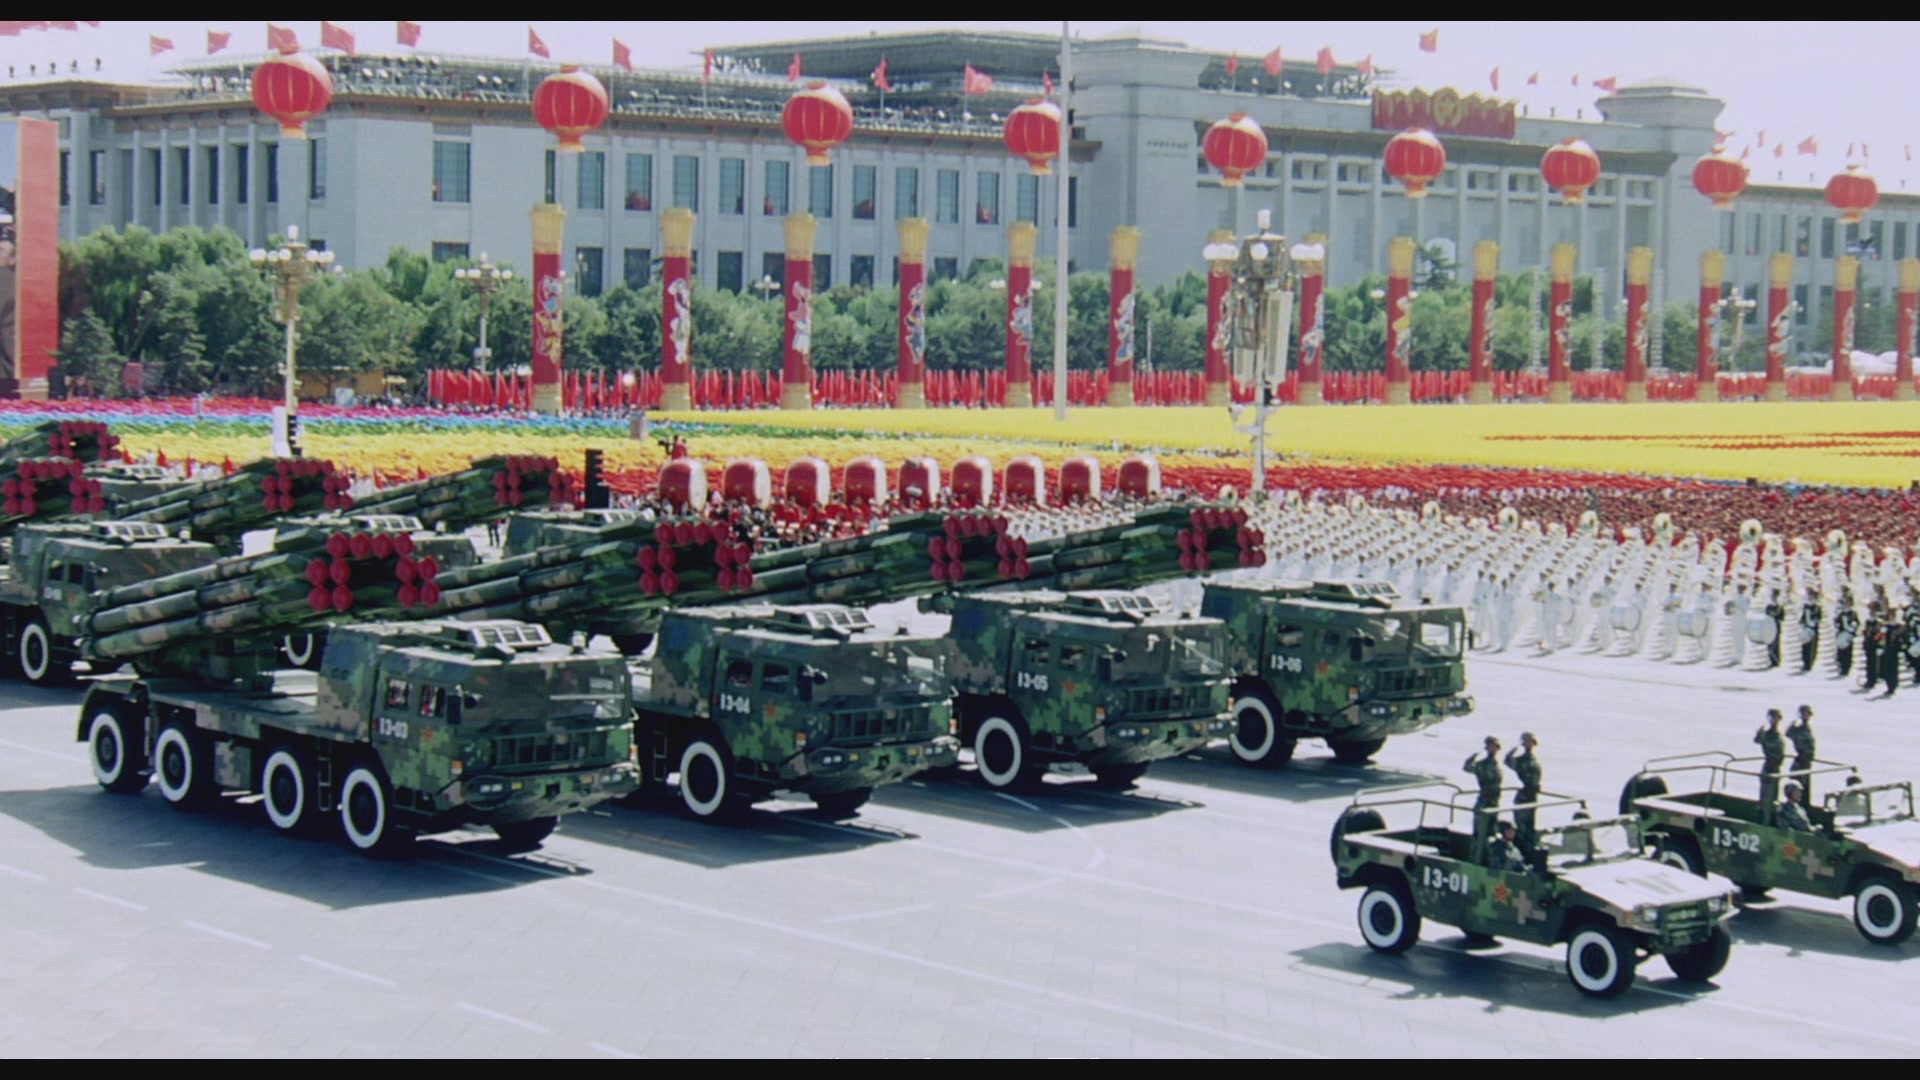 Multiple rocket launchers of the PLA Ground Force roll through Tiananmen Square in the 2009 Chinese National Day Parade.